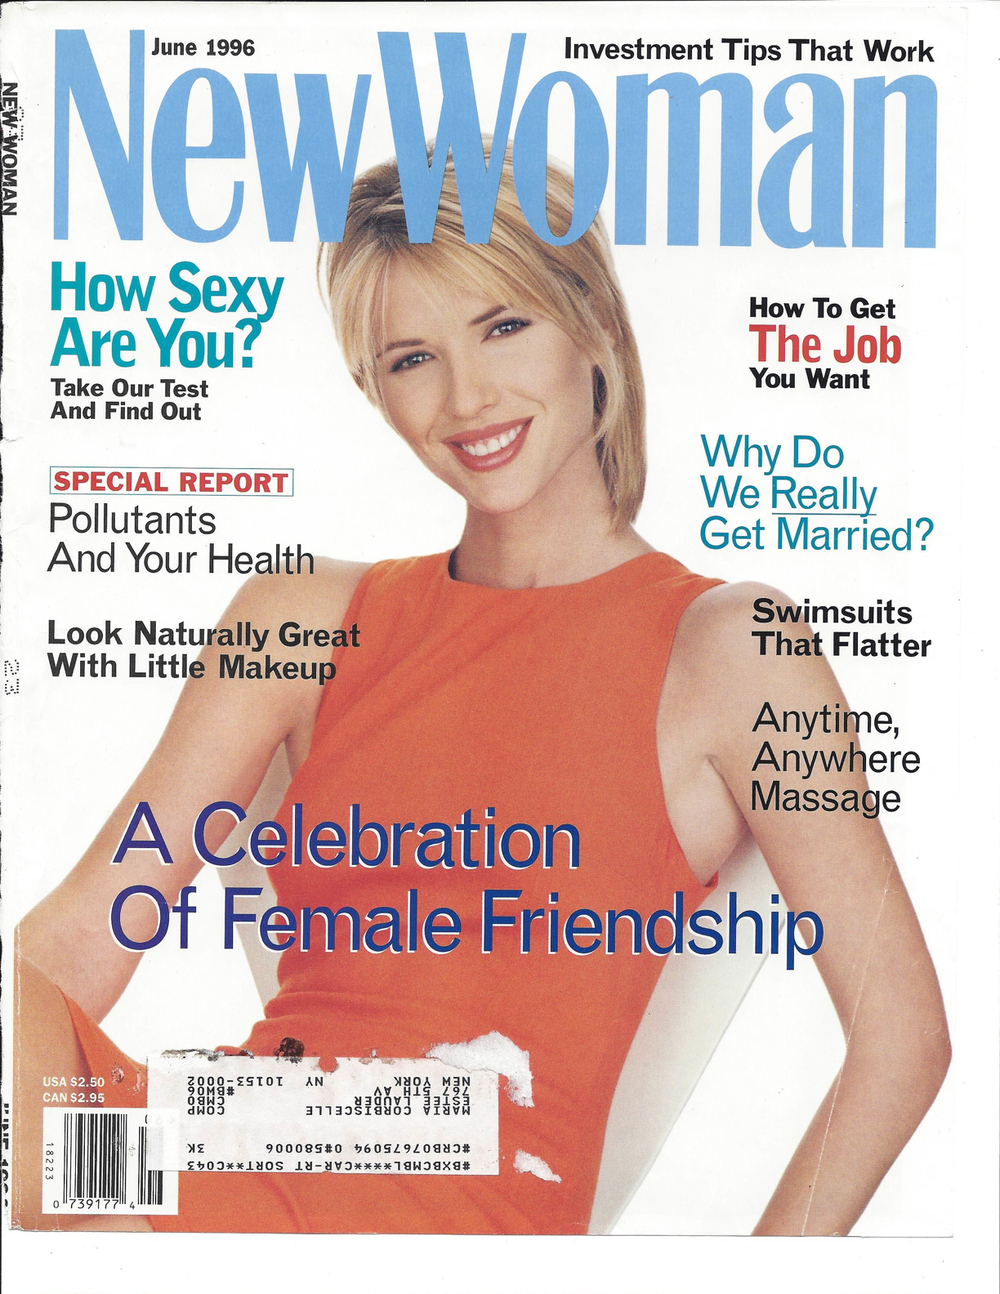 New Woman cover.jpg